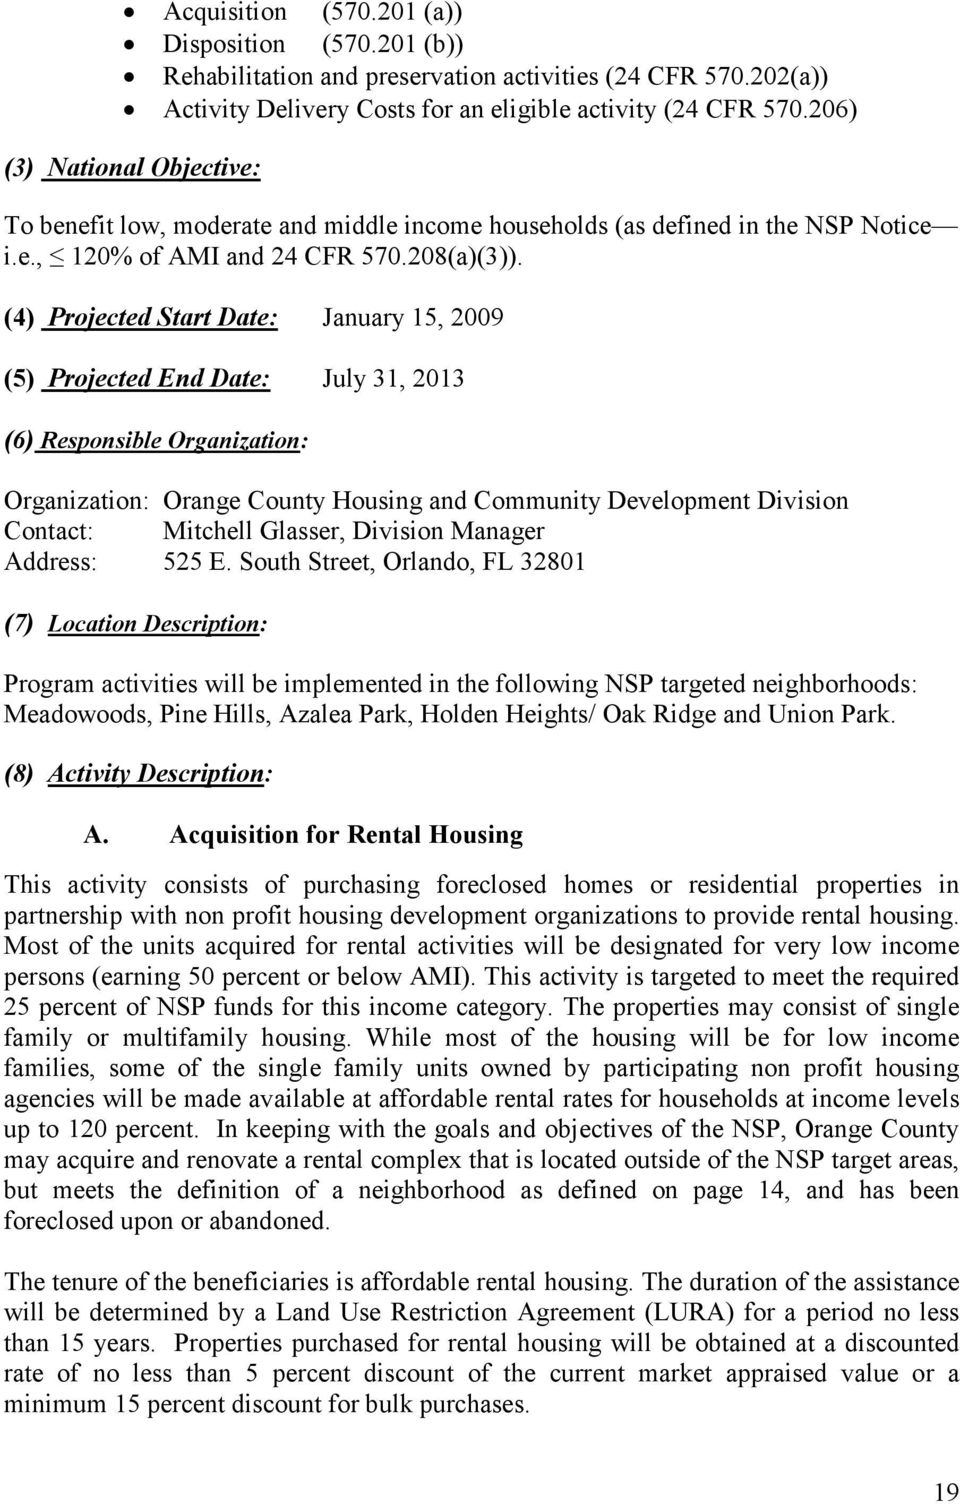 (4) Projected Start Date: January 15, 2009 (5) Projected End Date: July 31, 2013 (6) Responsible Organization: Organization: Orange County Housing and Community Development Division Contact: Mitchell